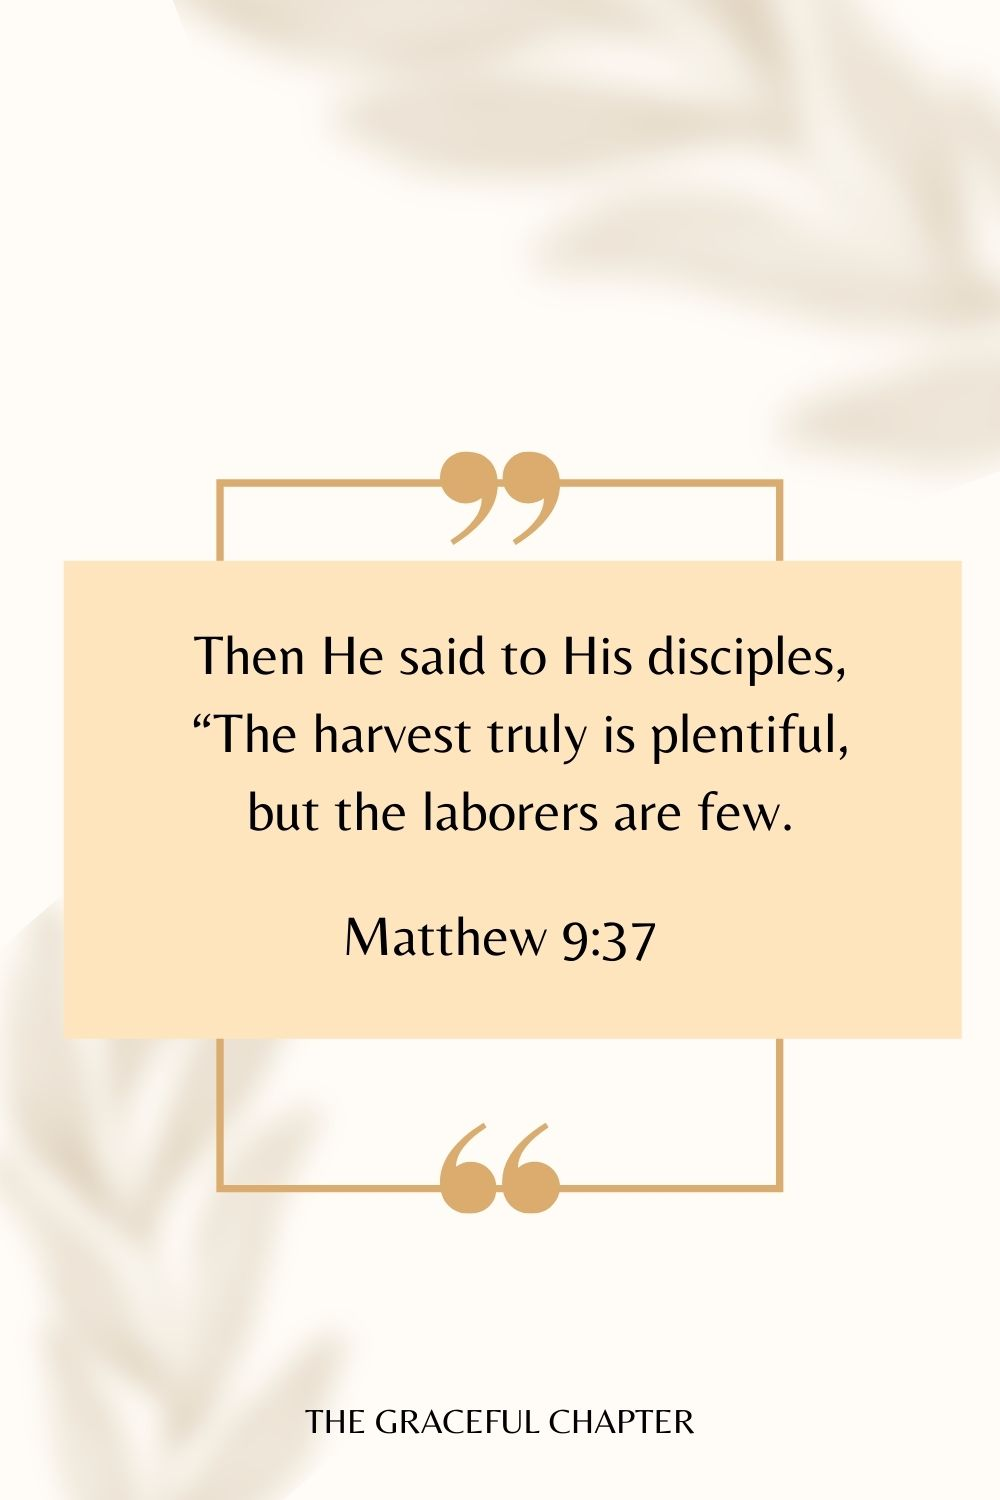 """Then He said to His disciples, """"The harvest truly is plentiful, but the laborers are few. Matthew 9:37"""